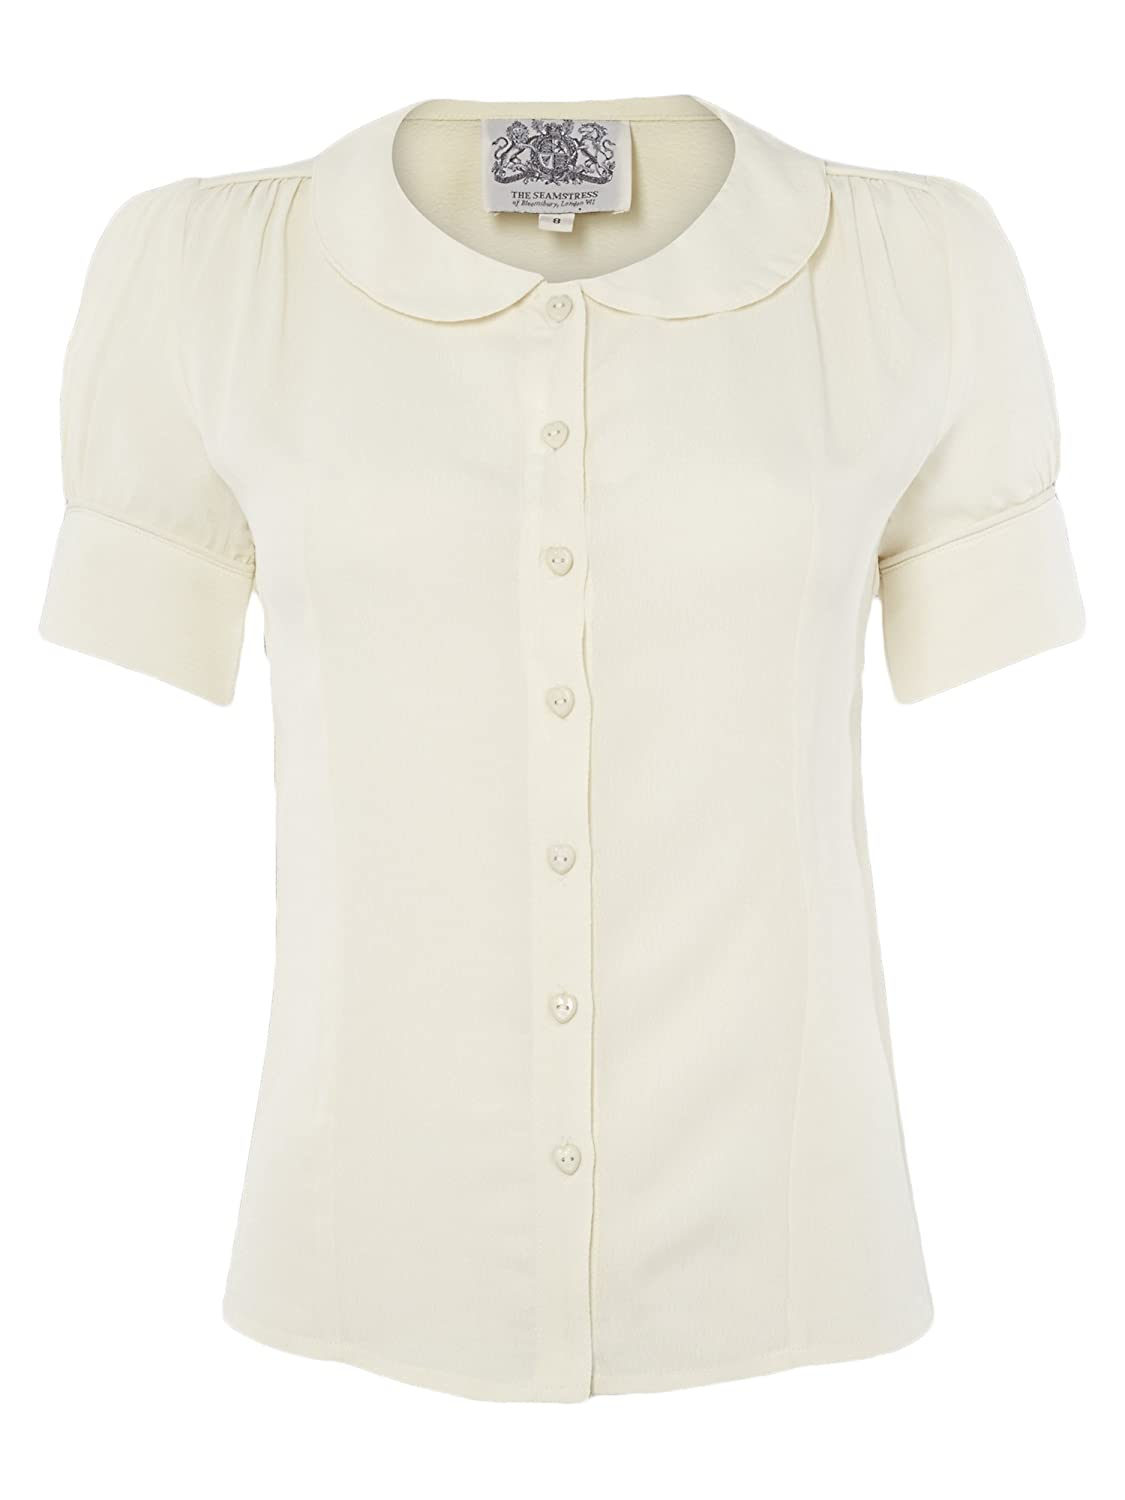 1940s Blouses and Tops 1940s Authentic Vintage Inspired Jive Blouse in Cream £39.00 AT vintagedancer.com